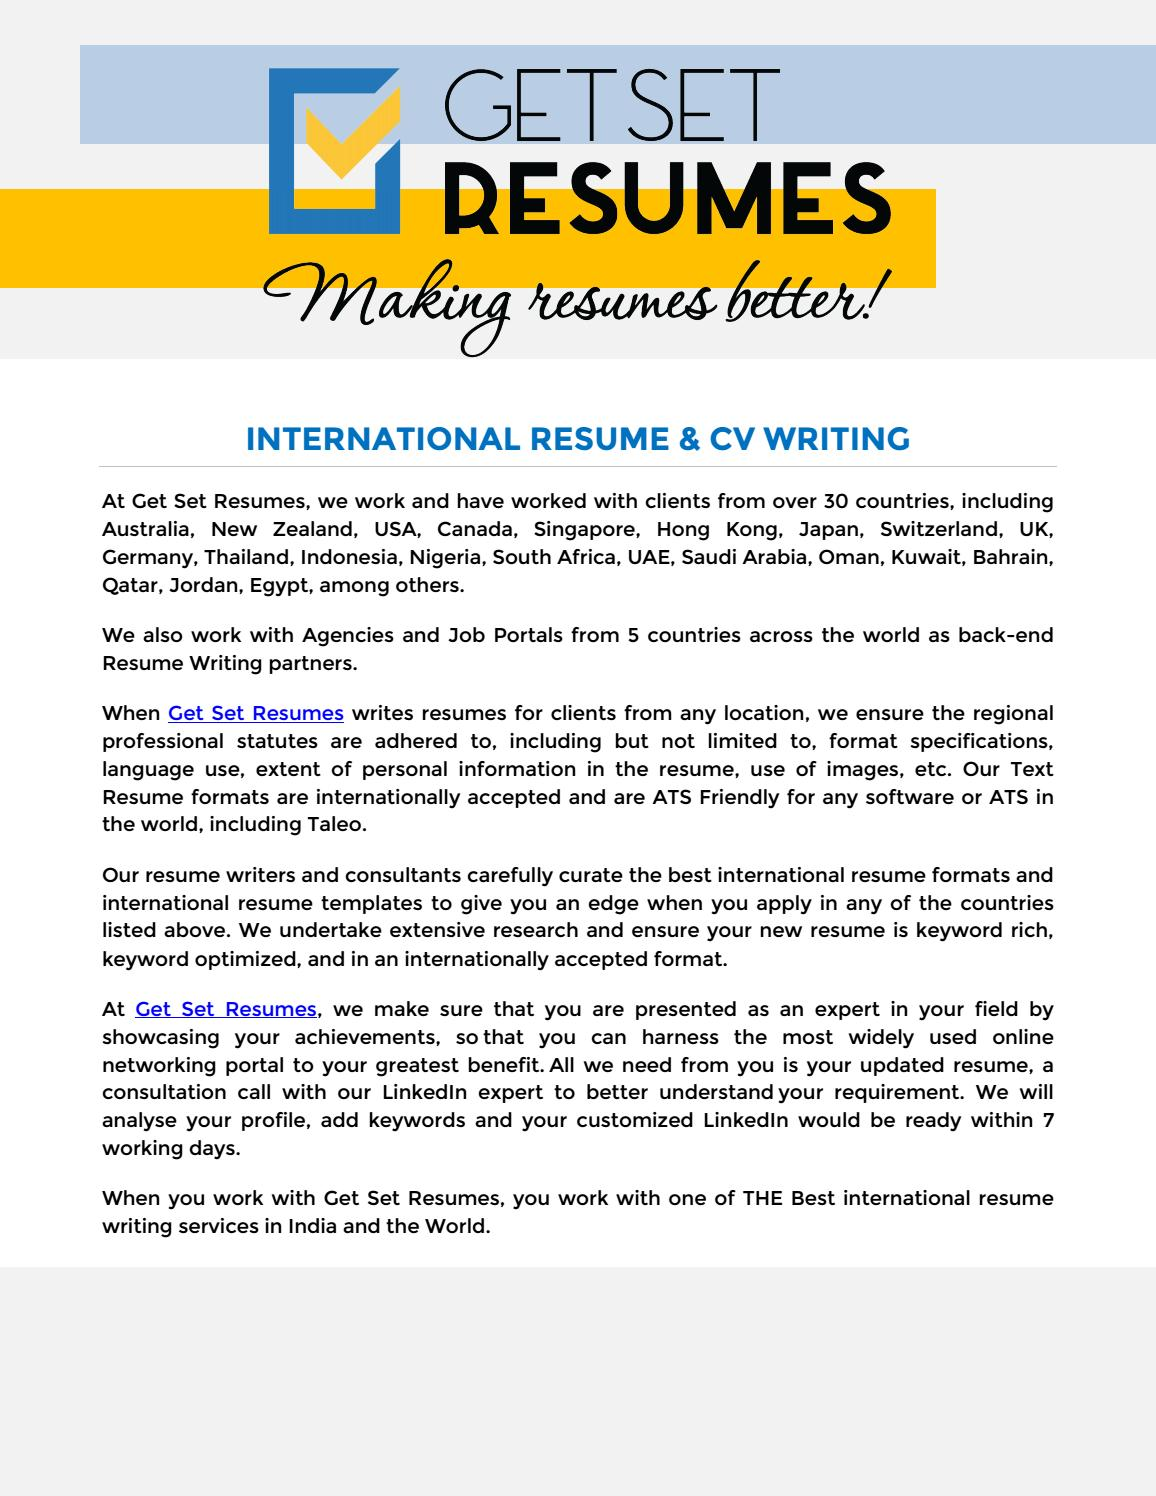 cv writing service one on resume examples for undergraduate college students kitchen Resume One On One Resume Writing Service